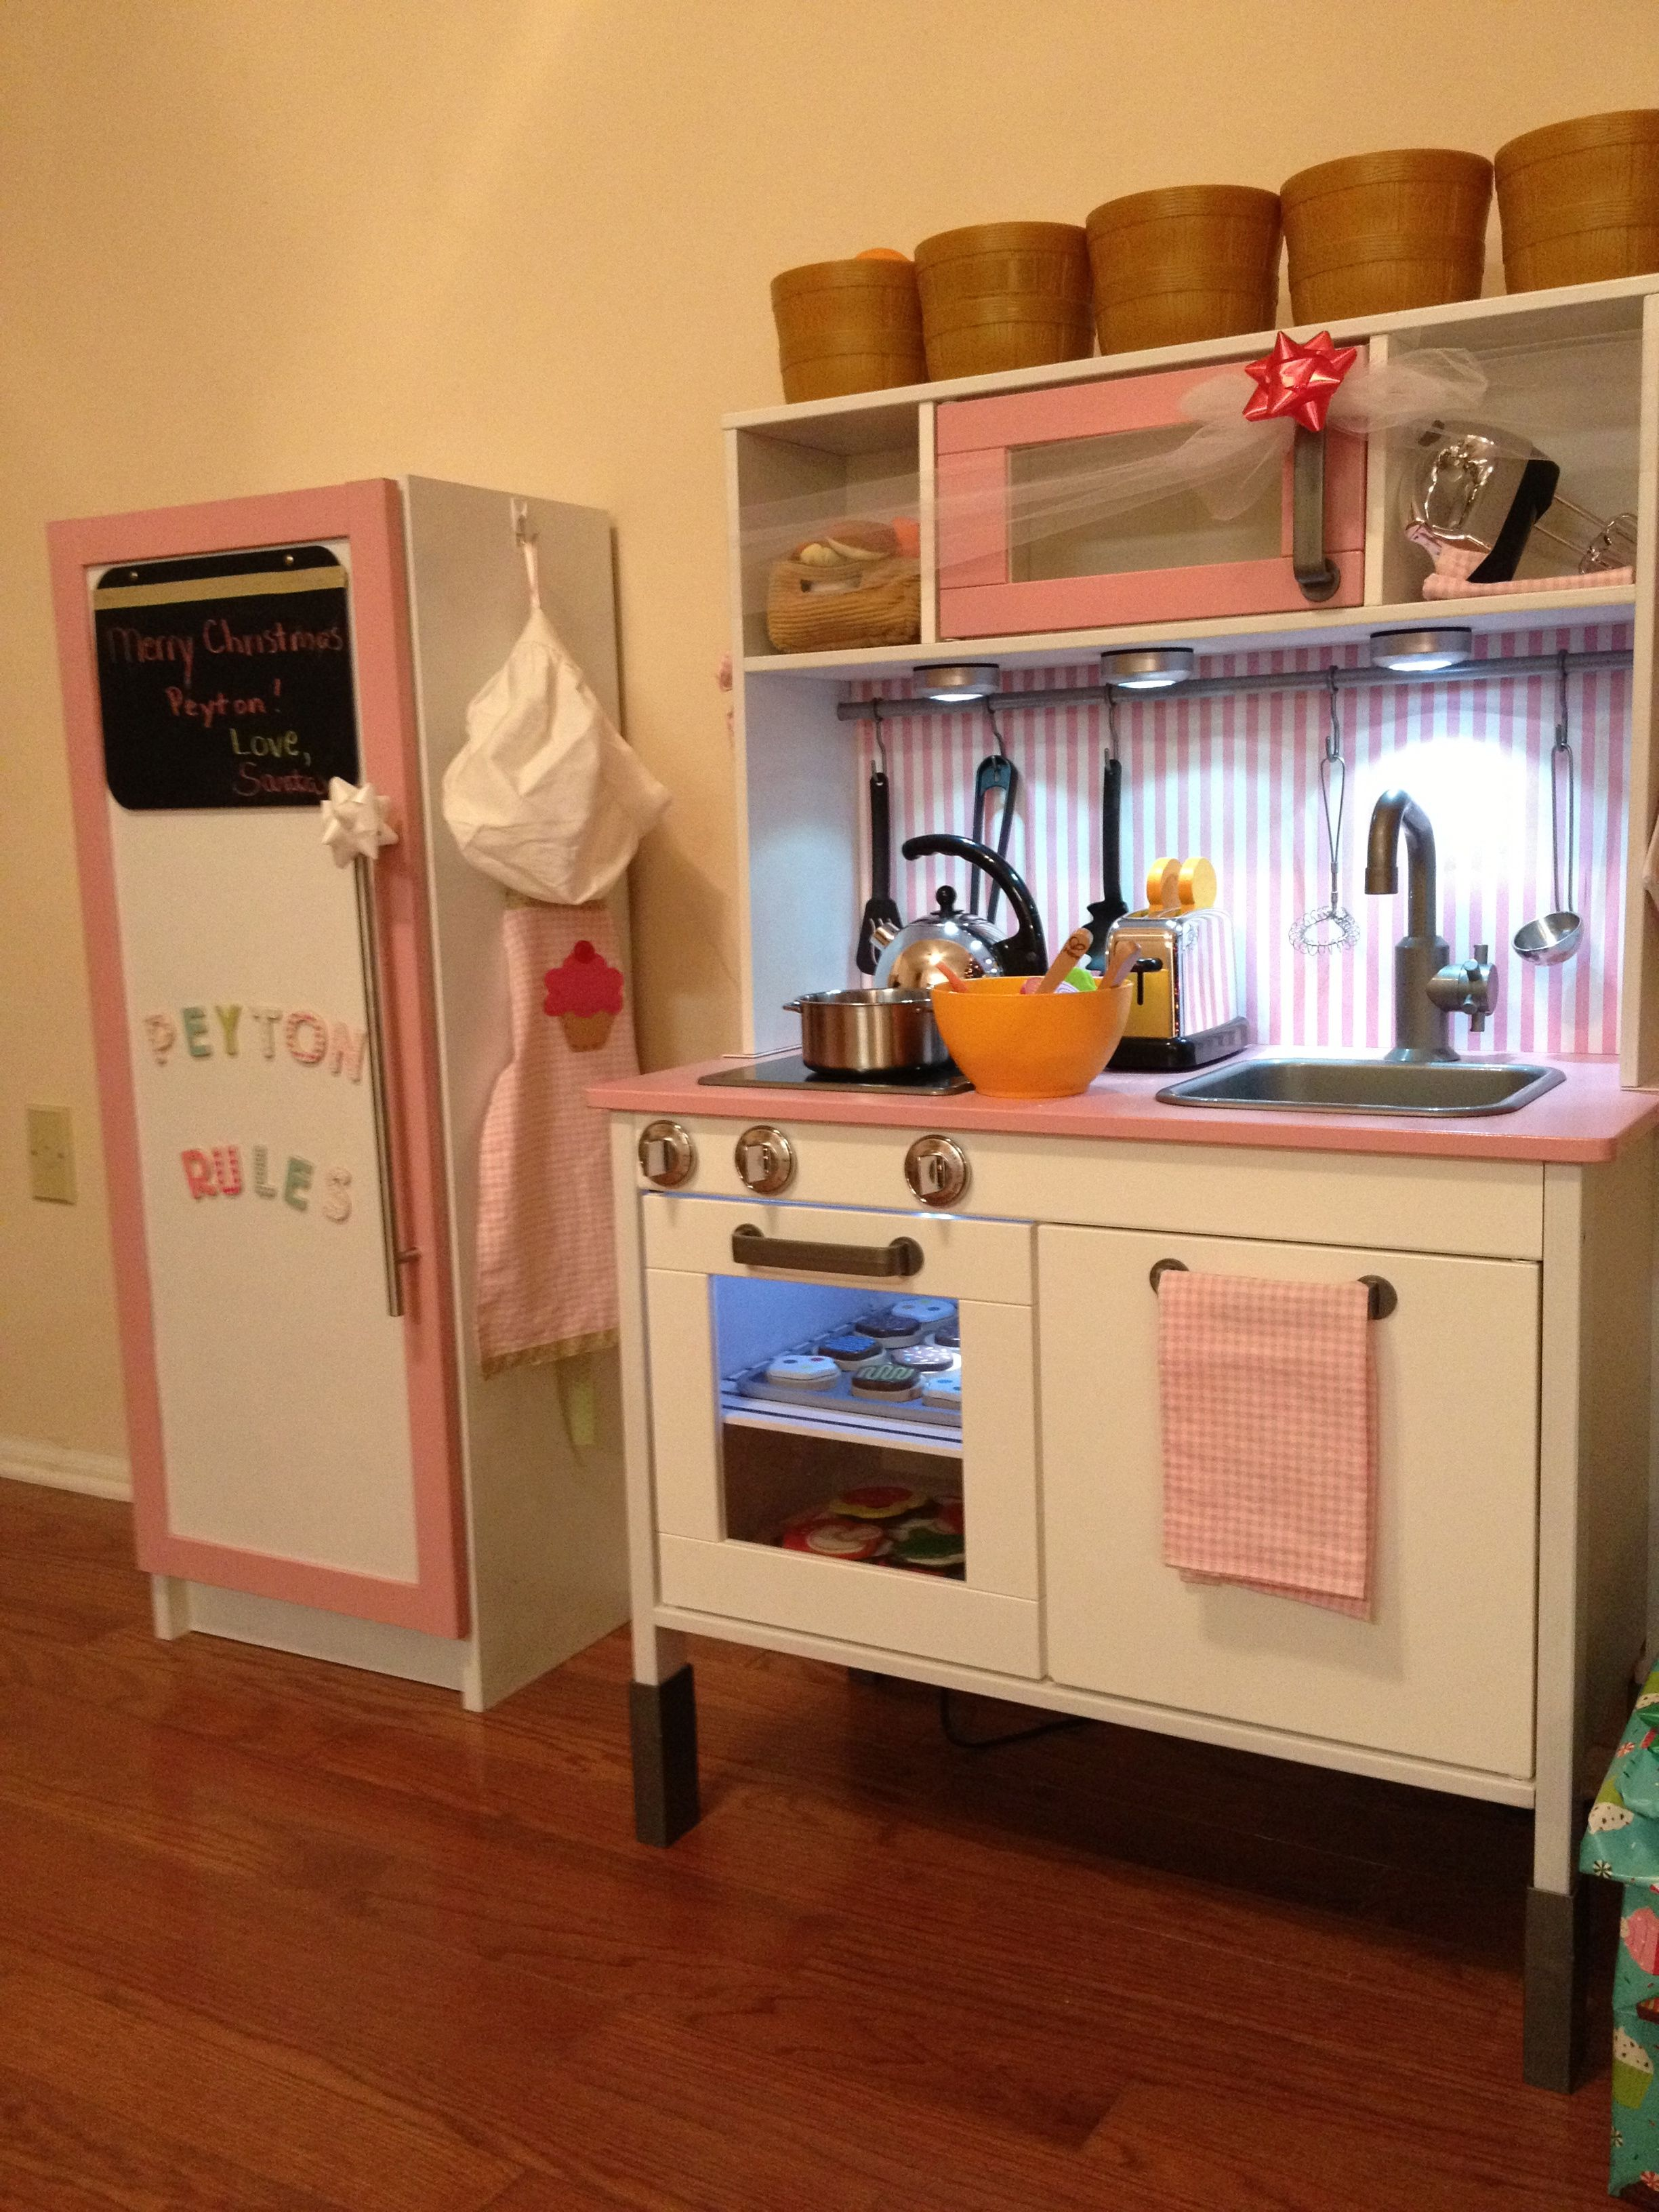 The 5 Best Diy Play Kitchens Ikea Kuche Kinder Ikea Spielkuche Ikea Ideen